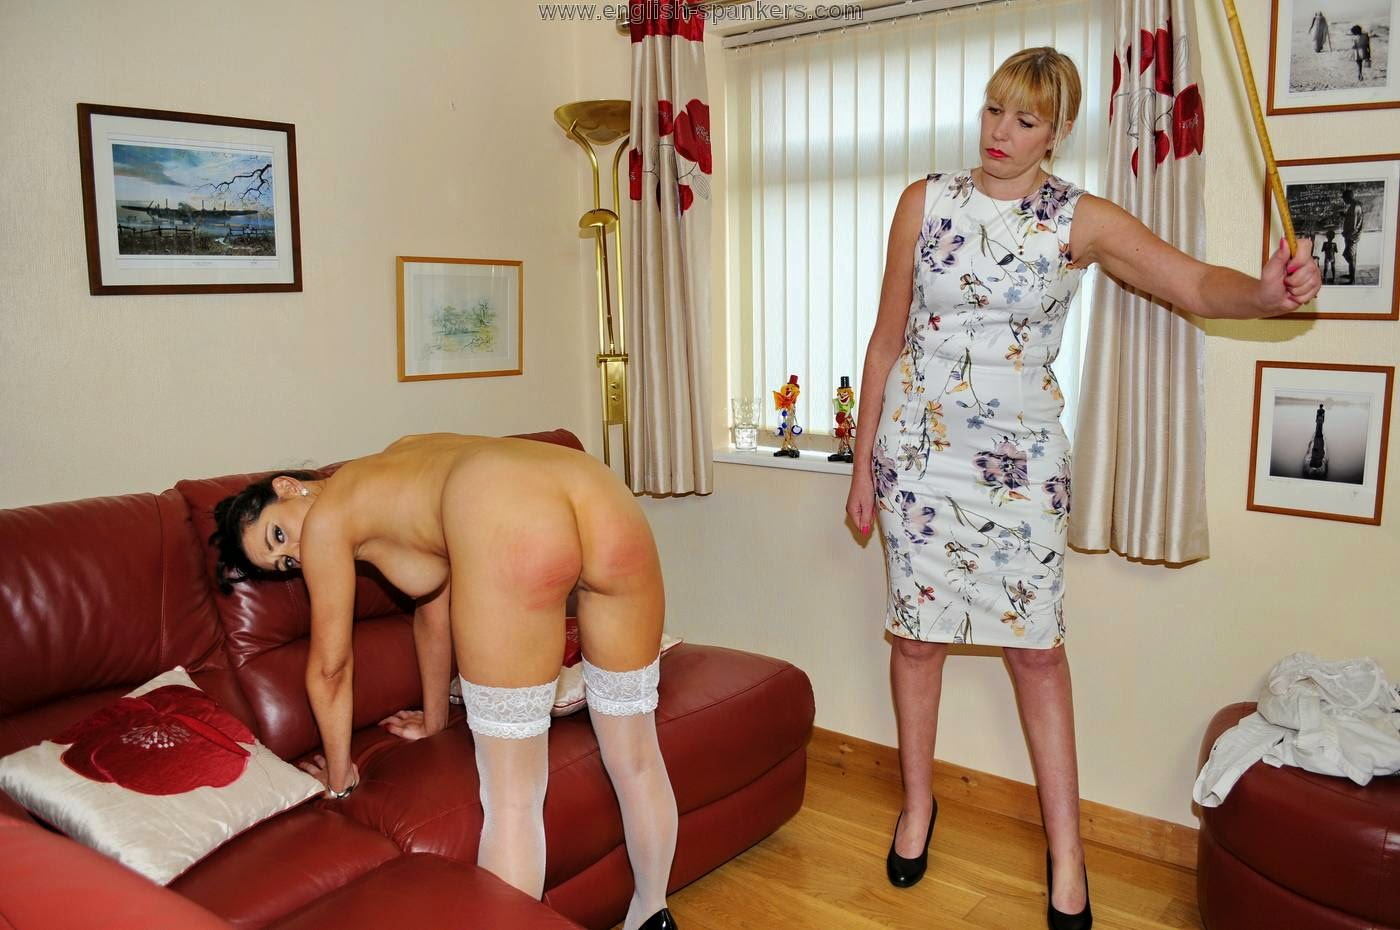 Wonderful fuck English caning porn feast for